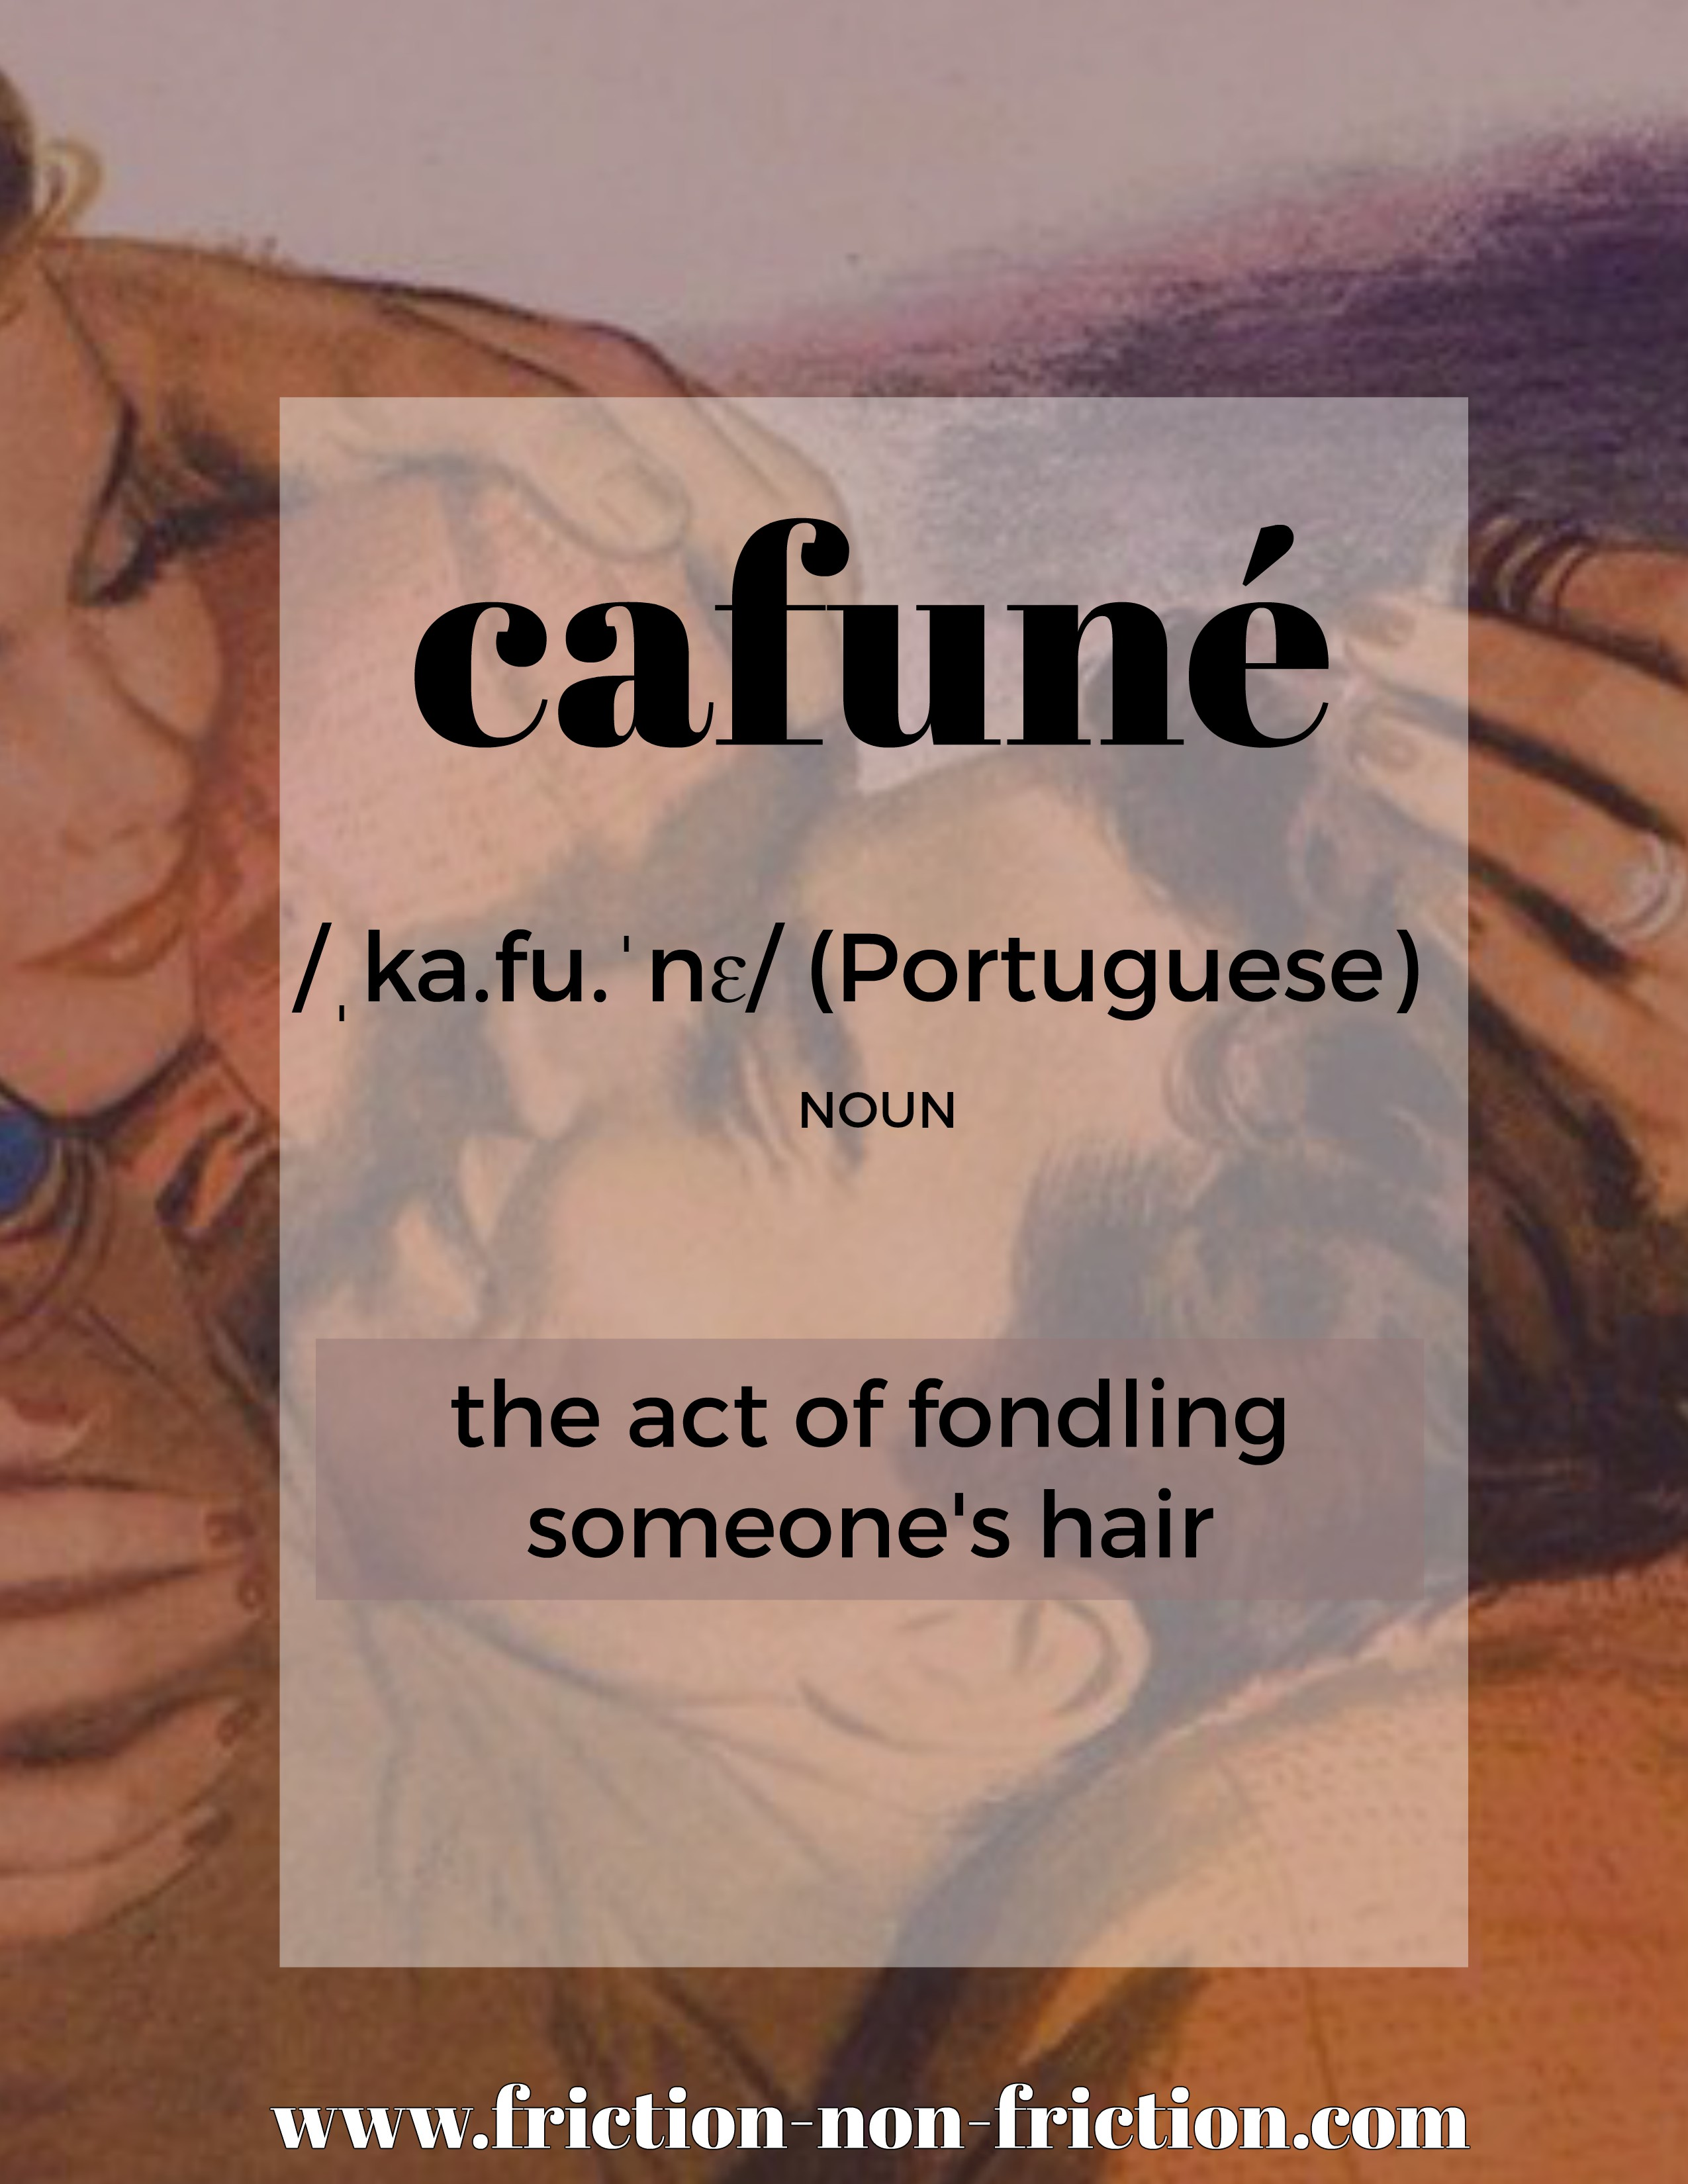 Cafune -- another great FRICTIONARY definition from Friction|non|Friction